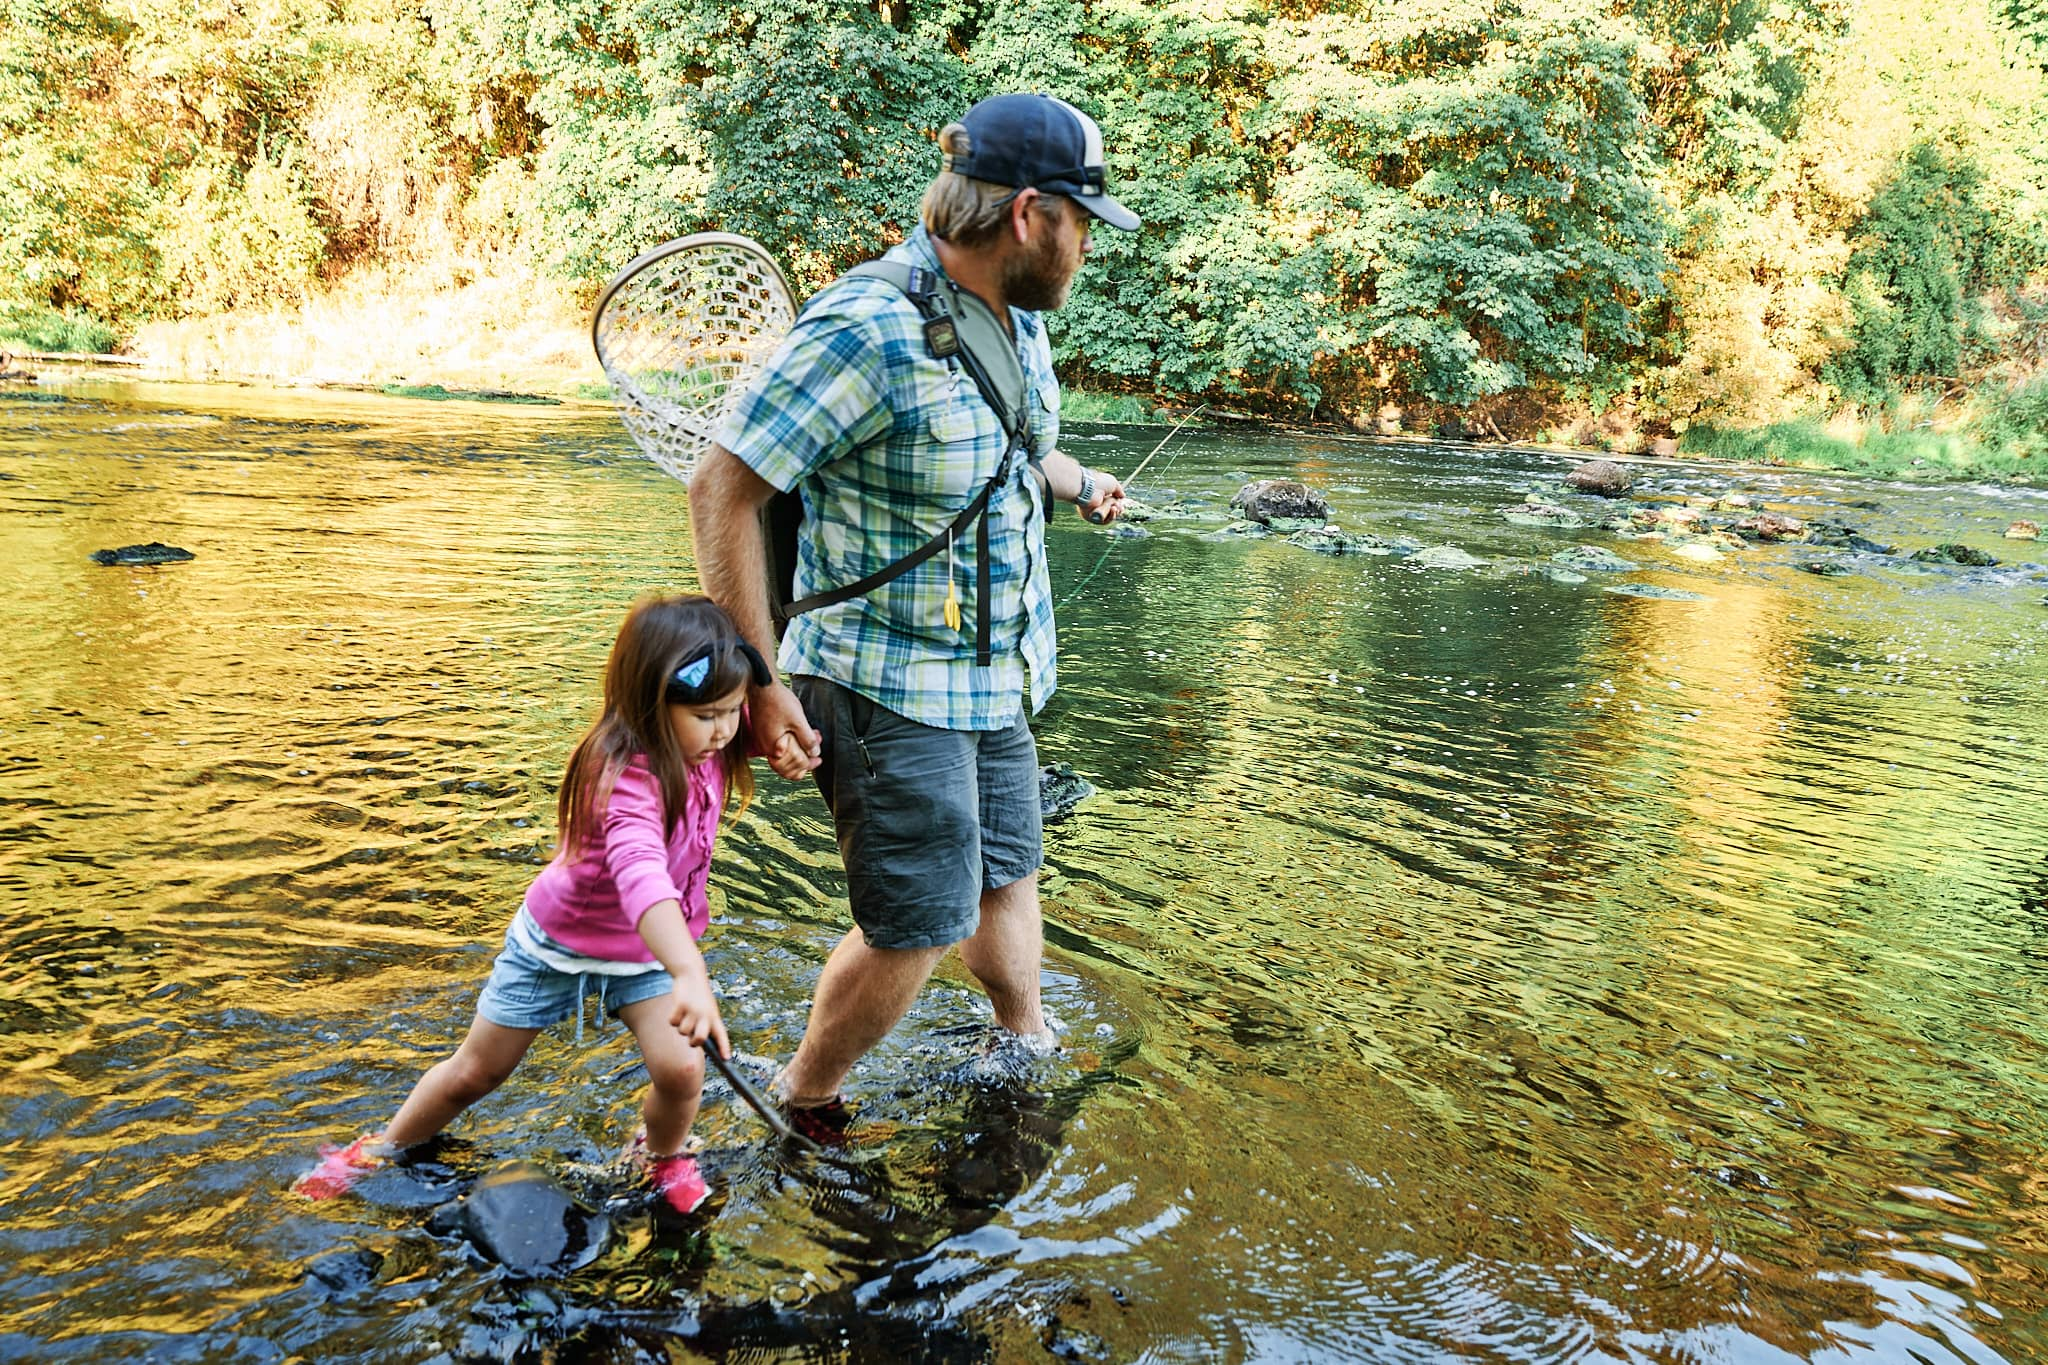 McKenzie and her Dad walking through a shallow river while casting a Tenkara rod